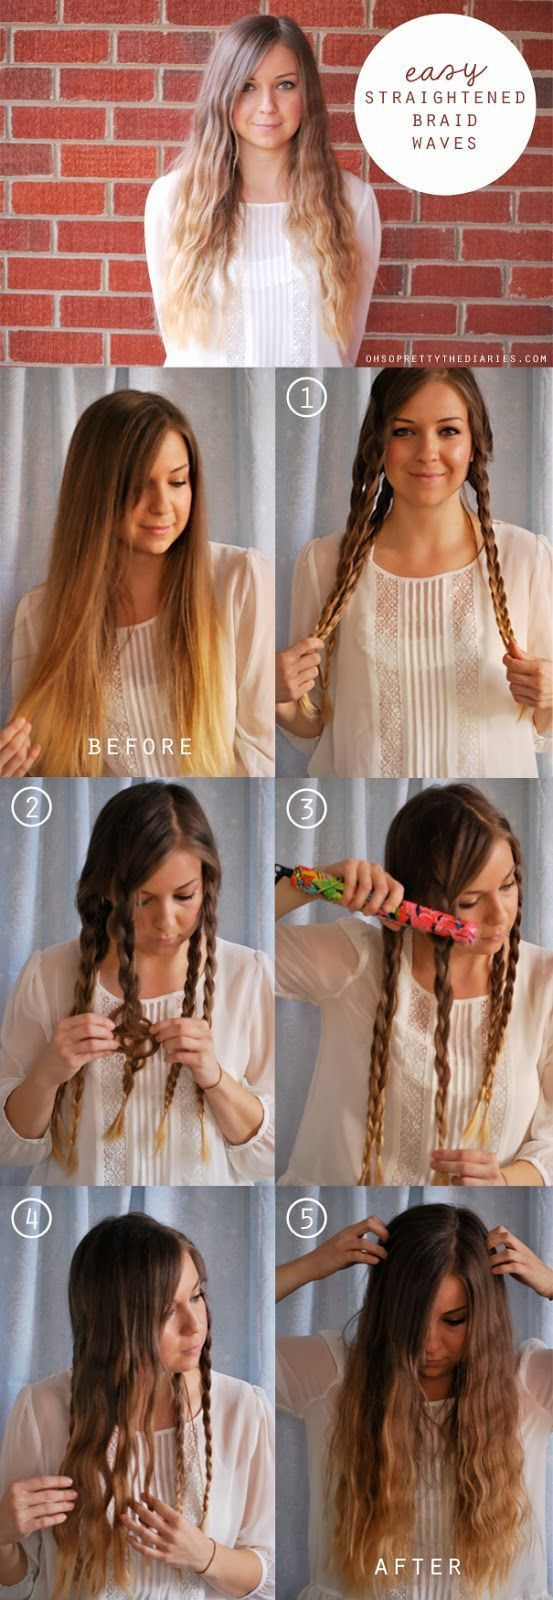 curl your hair by making braids